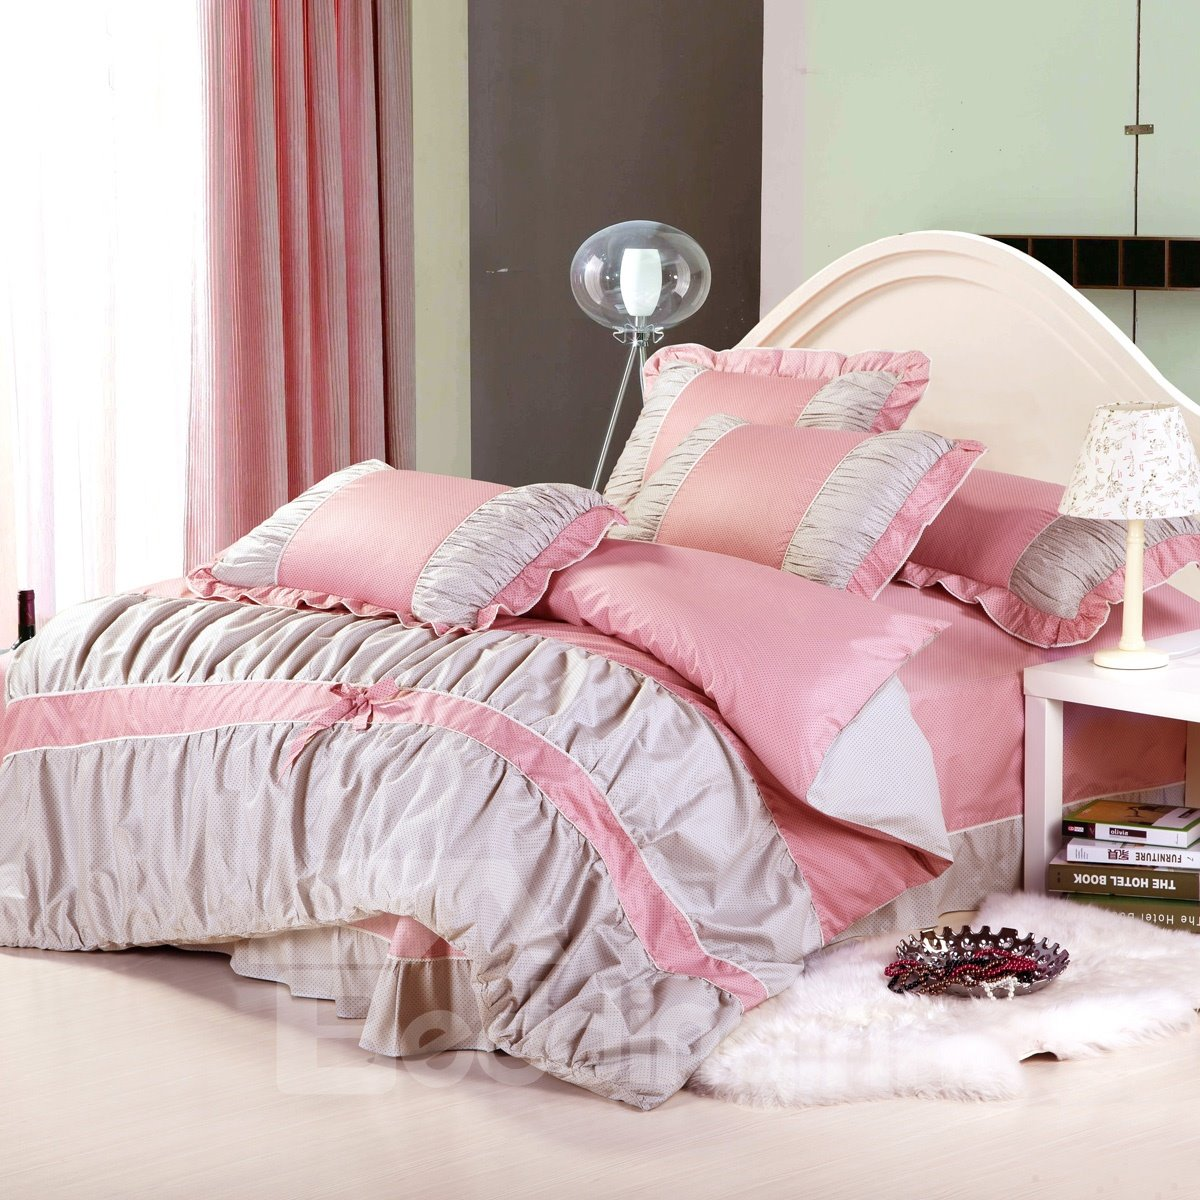 dot bowknot lace edge  piece pink and grey cotton bedding sets  -  dot bowknot lace edge  piece pink and grey cotton bedding sets